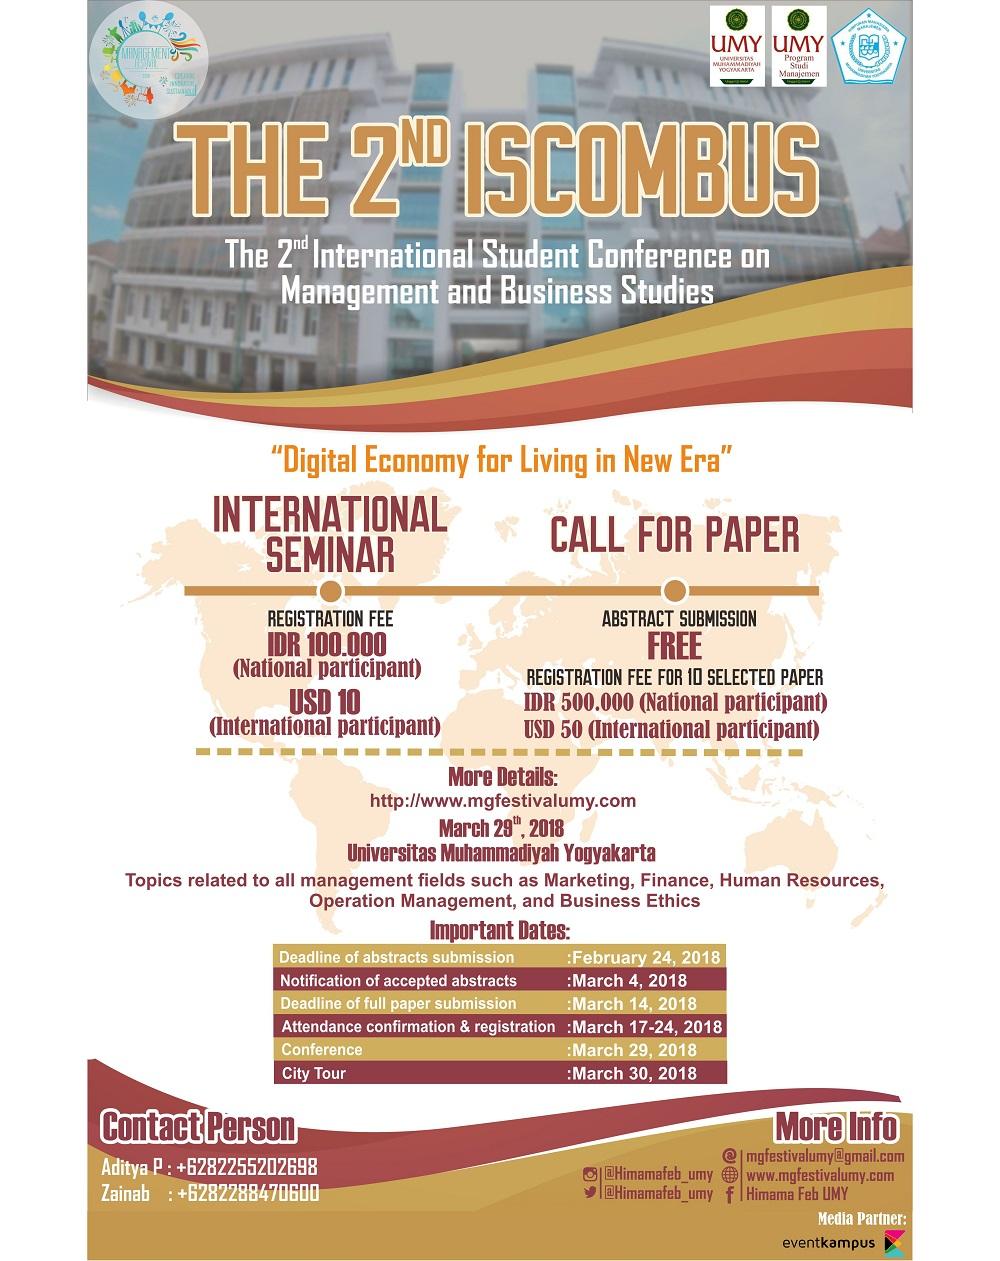 2nd-international-student-conference-management-business-studies-iscombus-2018